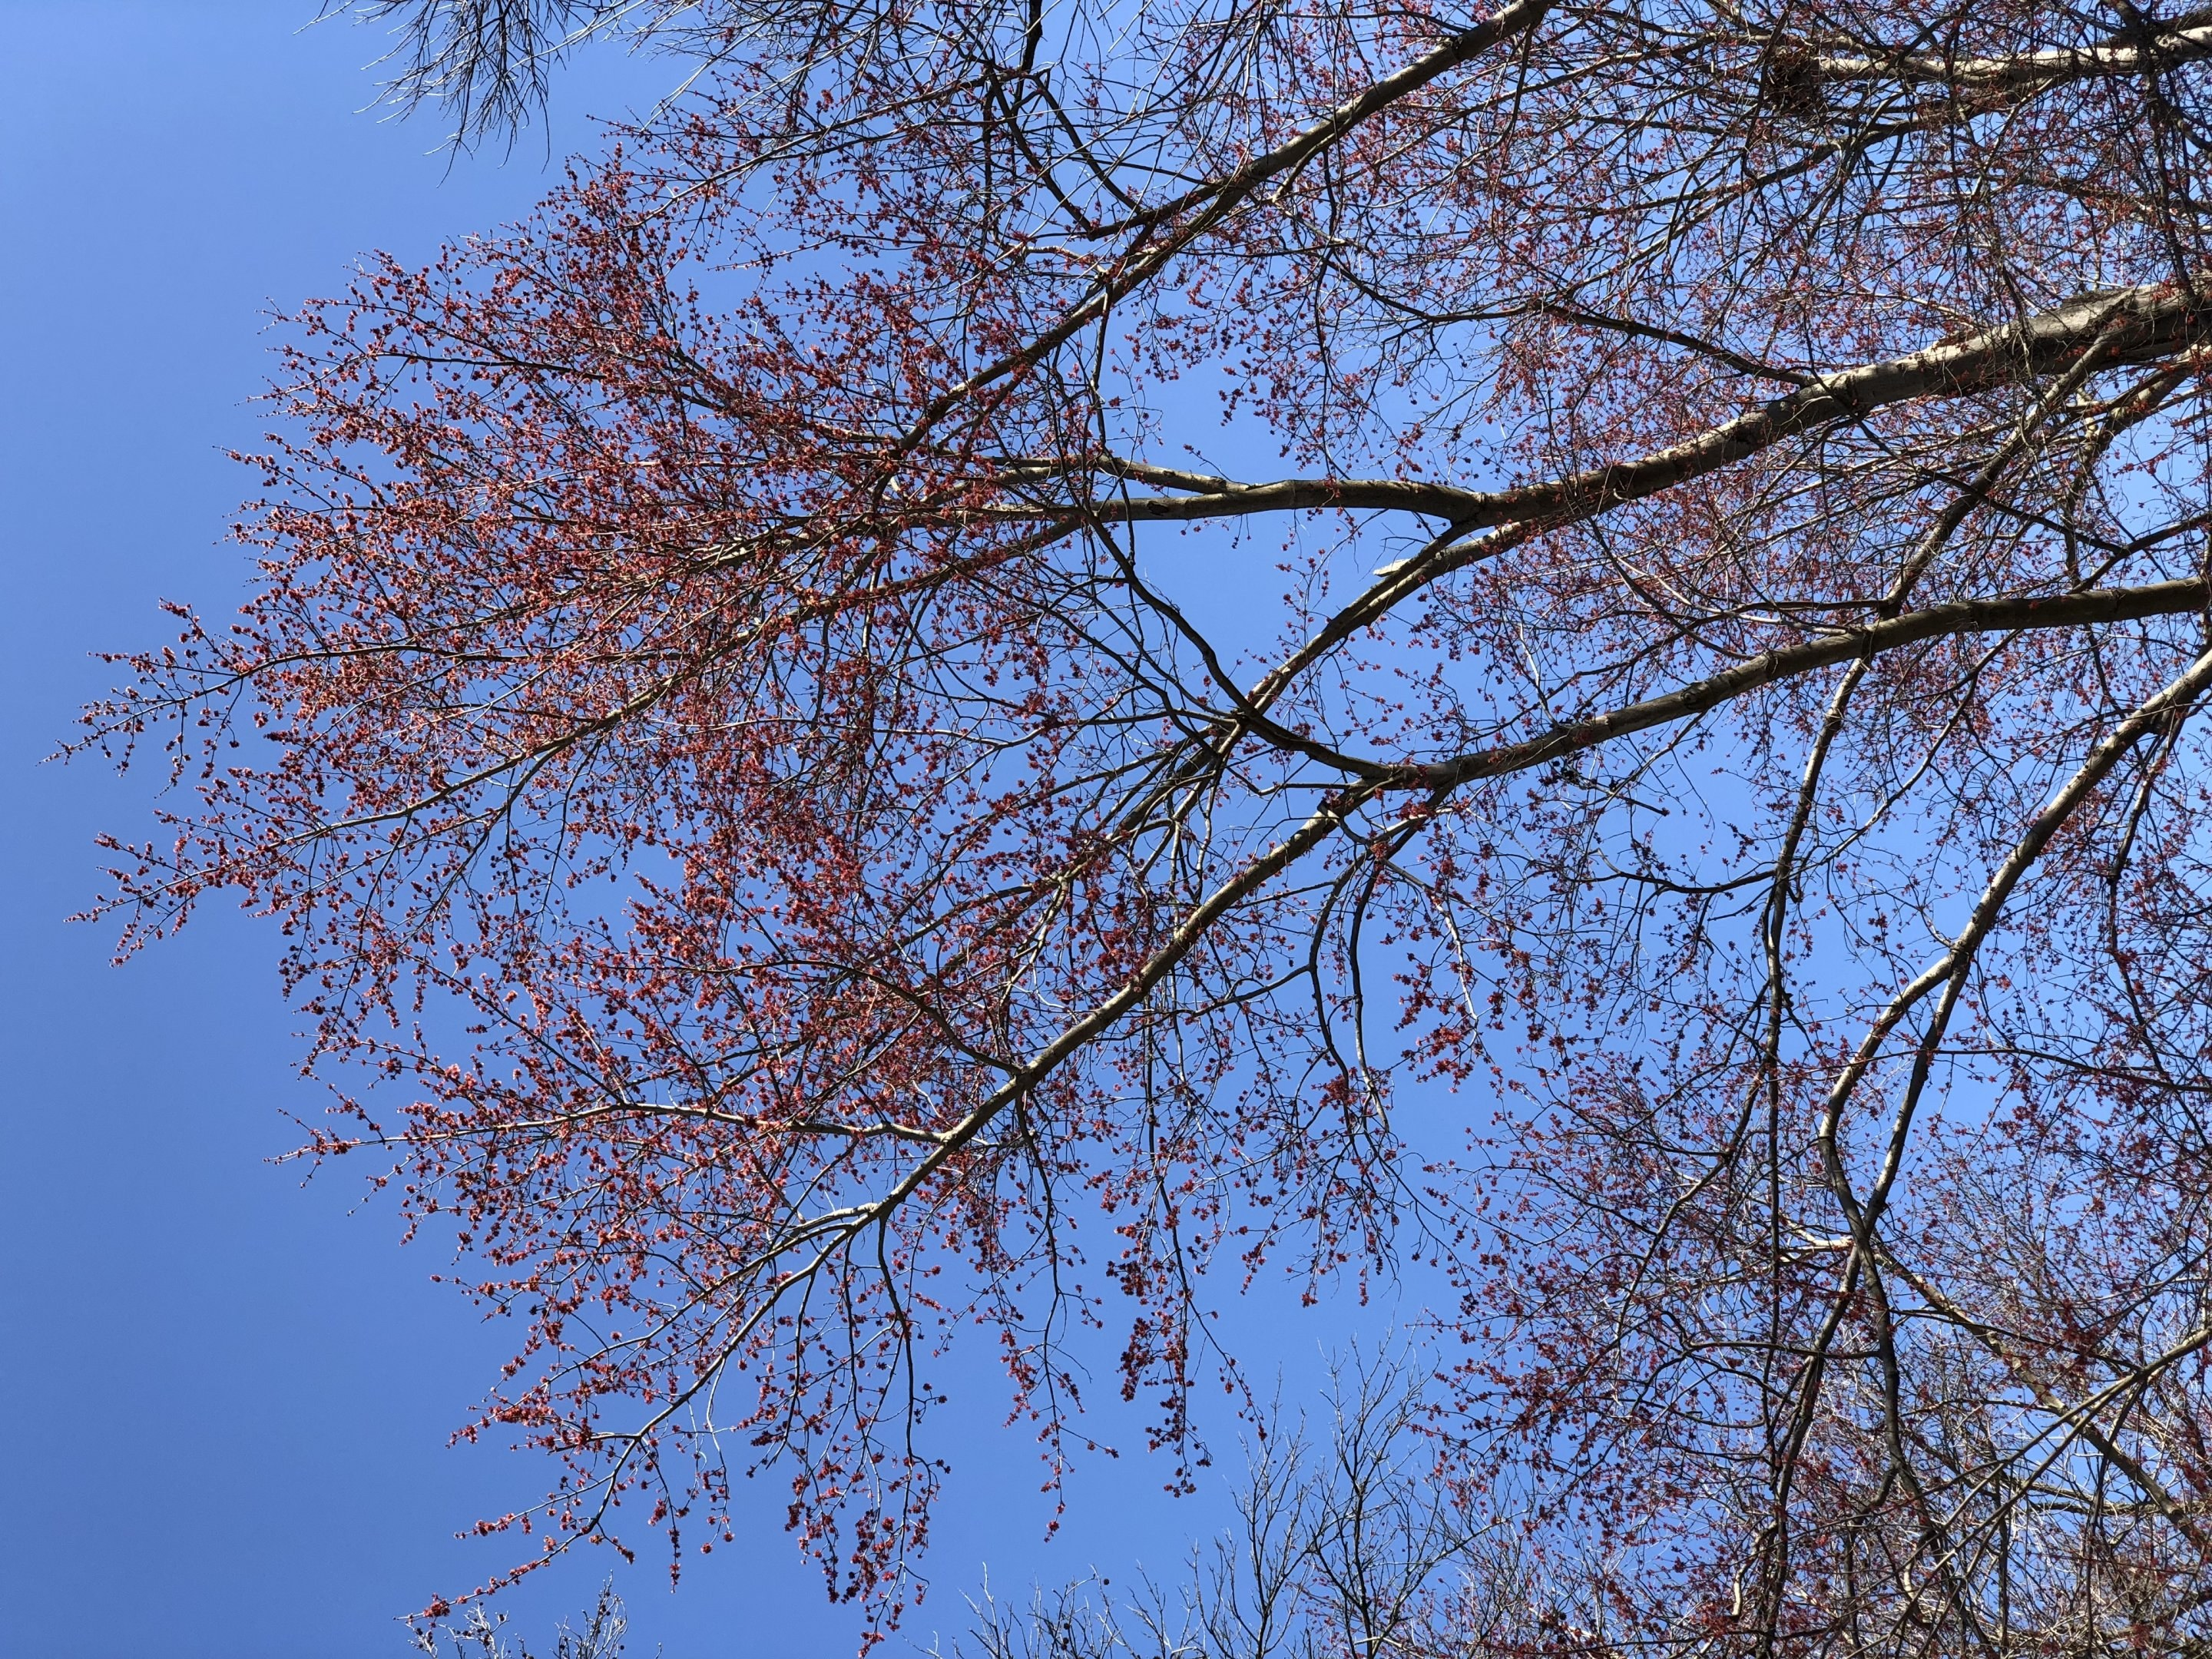 2020 03 16 11 04 18 A Red Maple blooming along Terrace Boulevard in Ewing Township Mercer County New Jersey